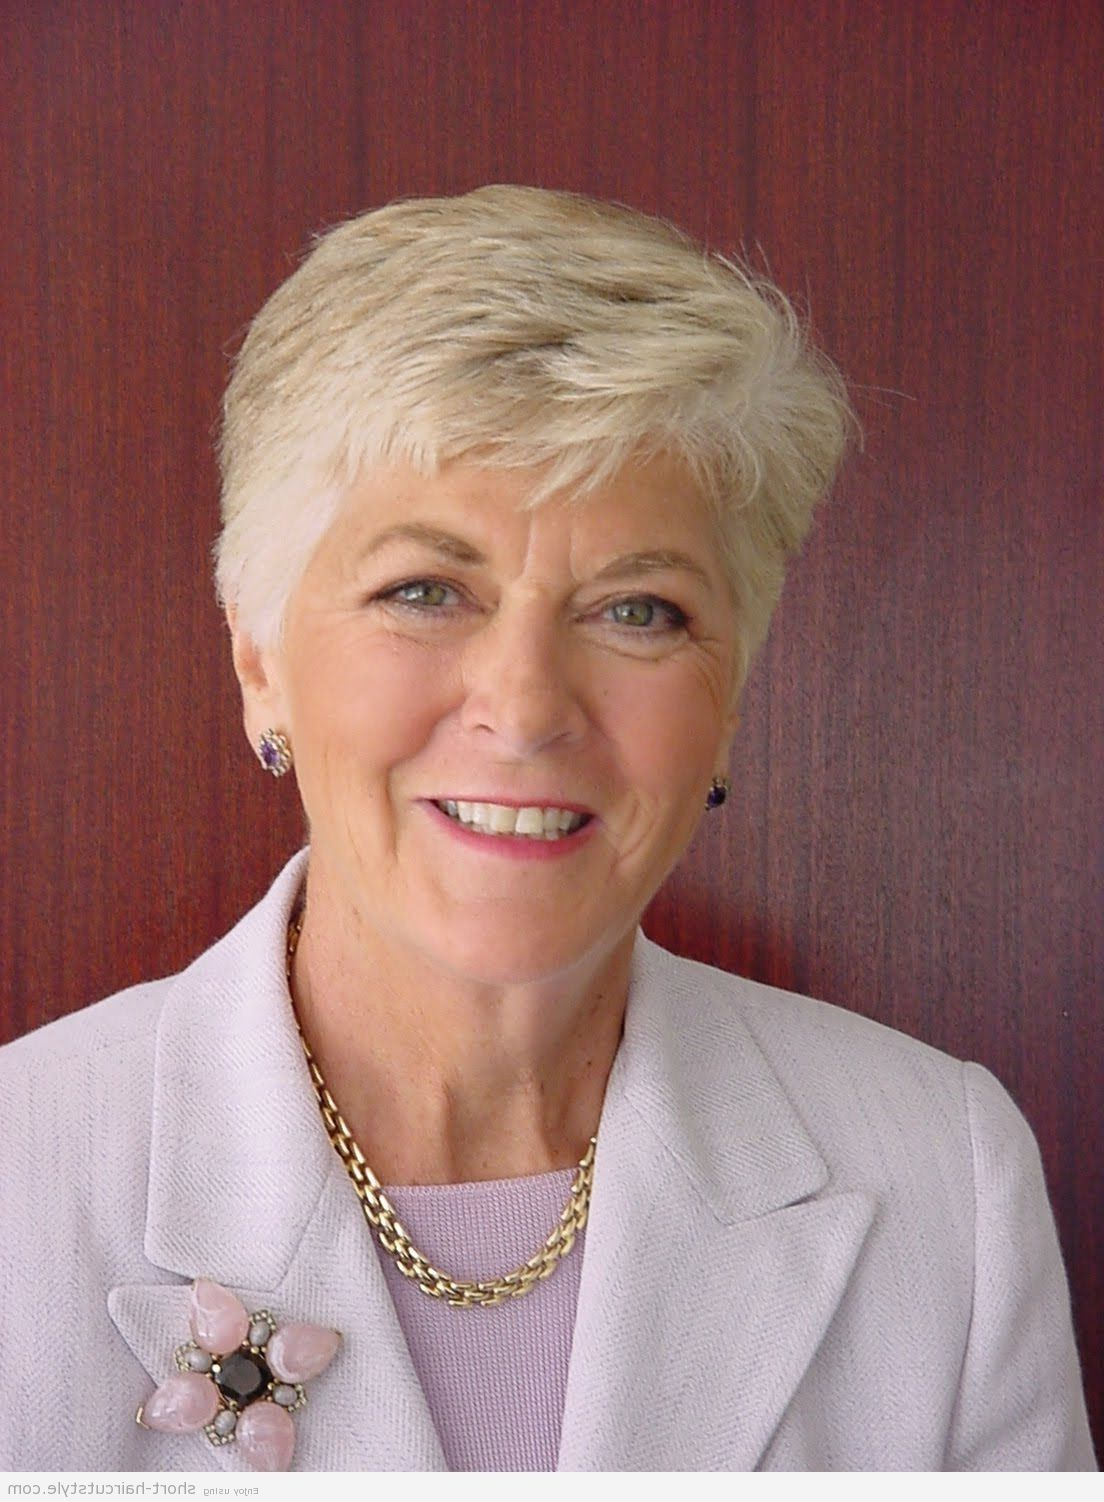 Haircuts For Women Over 70 Gorgeous Hairstyles For Women Over 70 Of 29 Incredible Haircuts Fo Thick Hair Styles Very Short Hair Short Hairstyles For Women